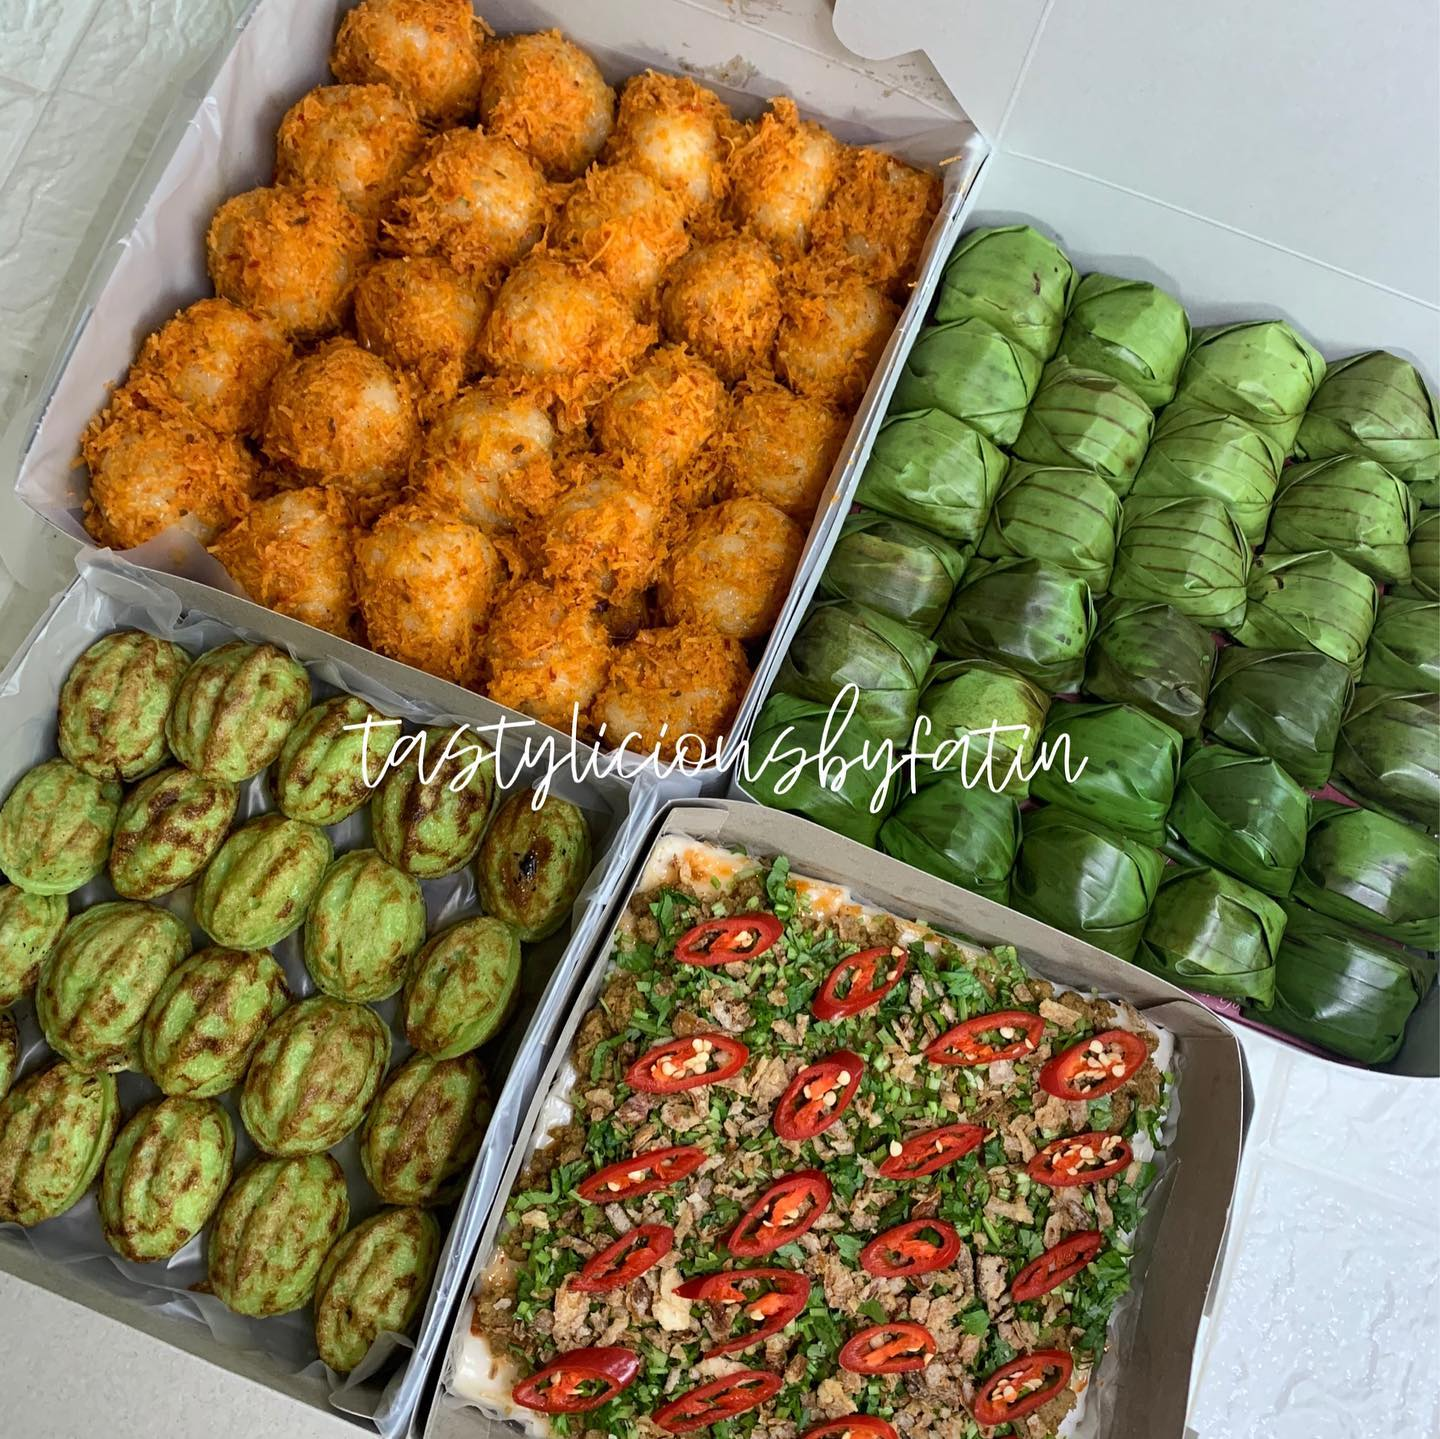 Delivery kuih area Klang, Delivery Kuih area Gombak, Delivery Kuih Area KL - Tastylisious by Fatin